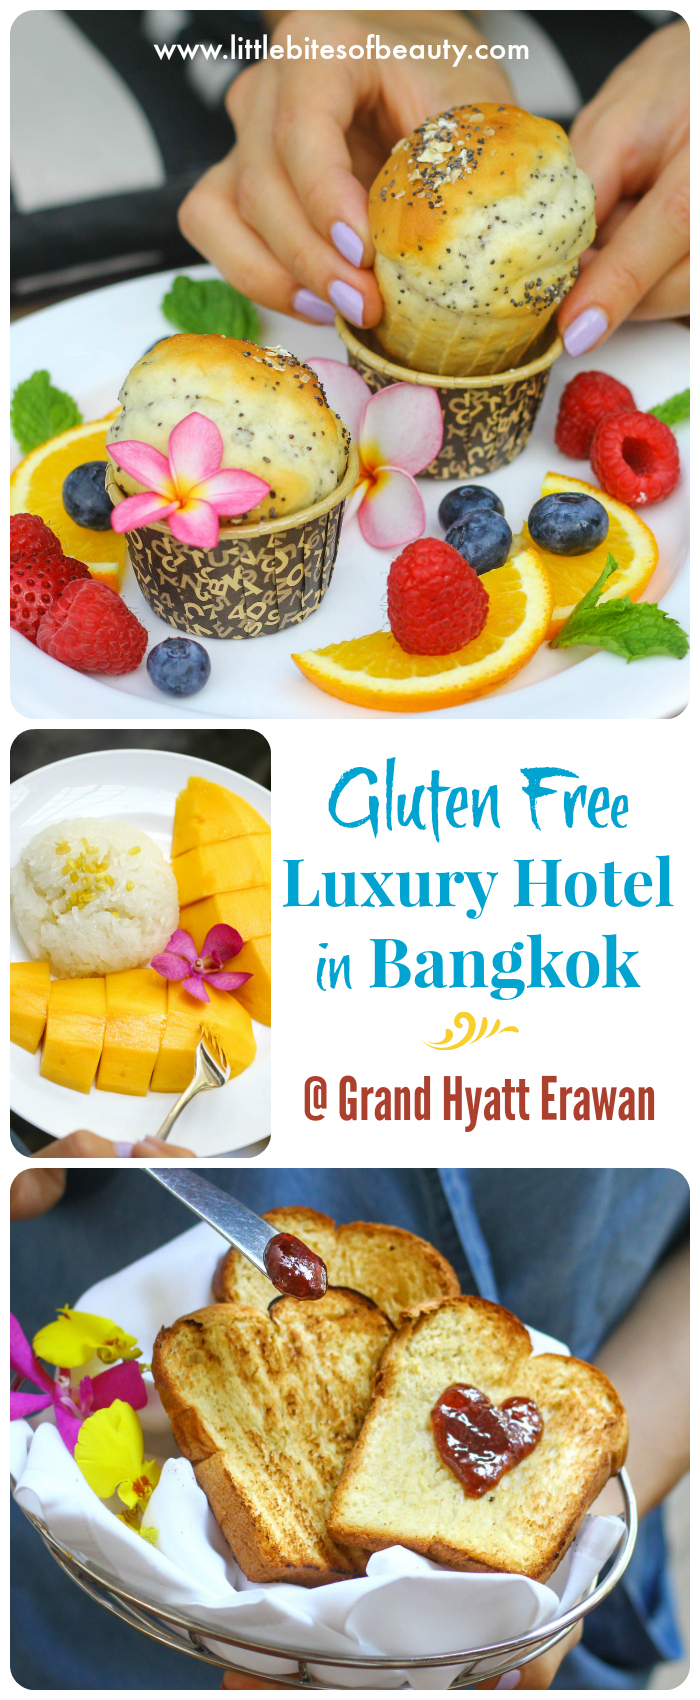 Gluten Free Luxury Hotel in Bangkok. Grand Hyatt Erawan